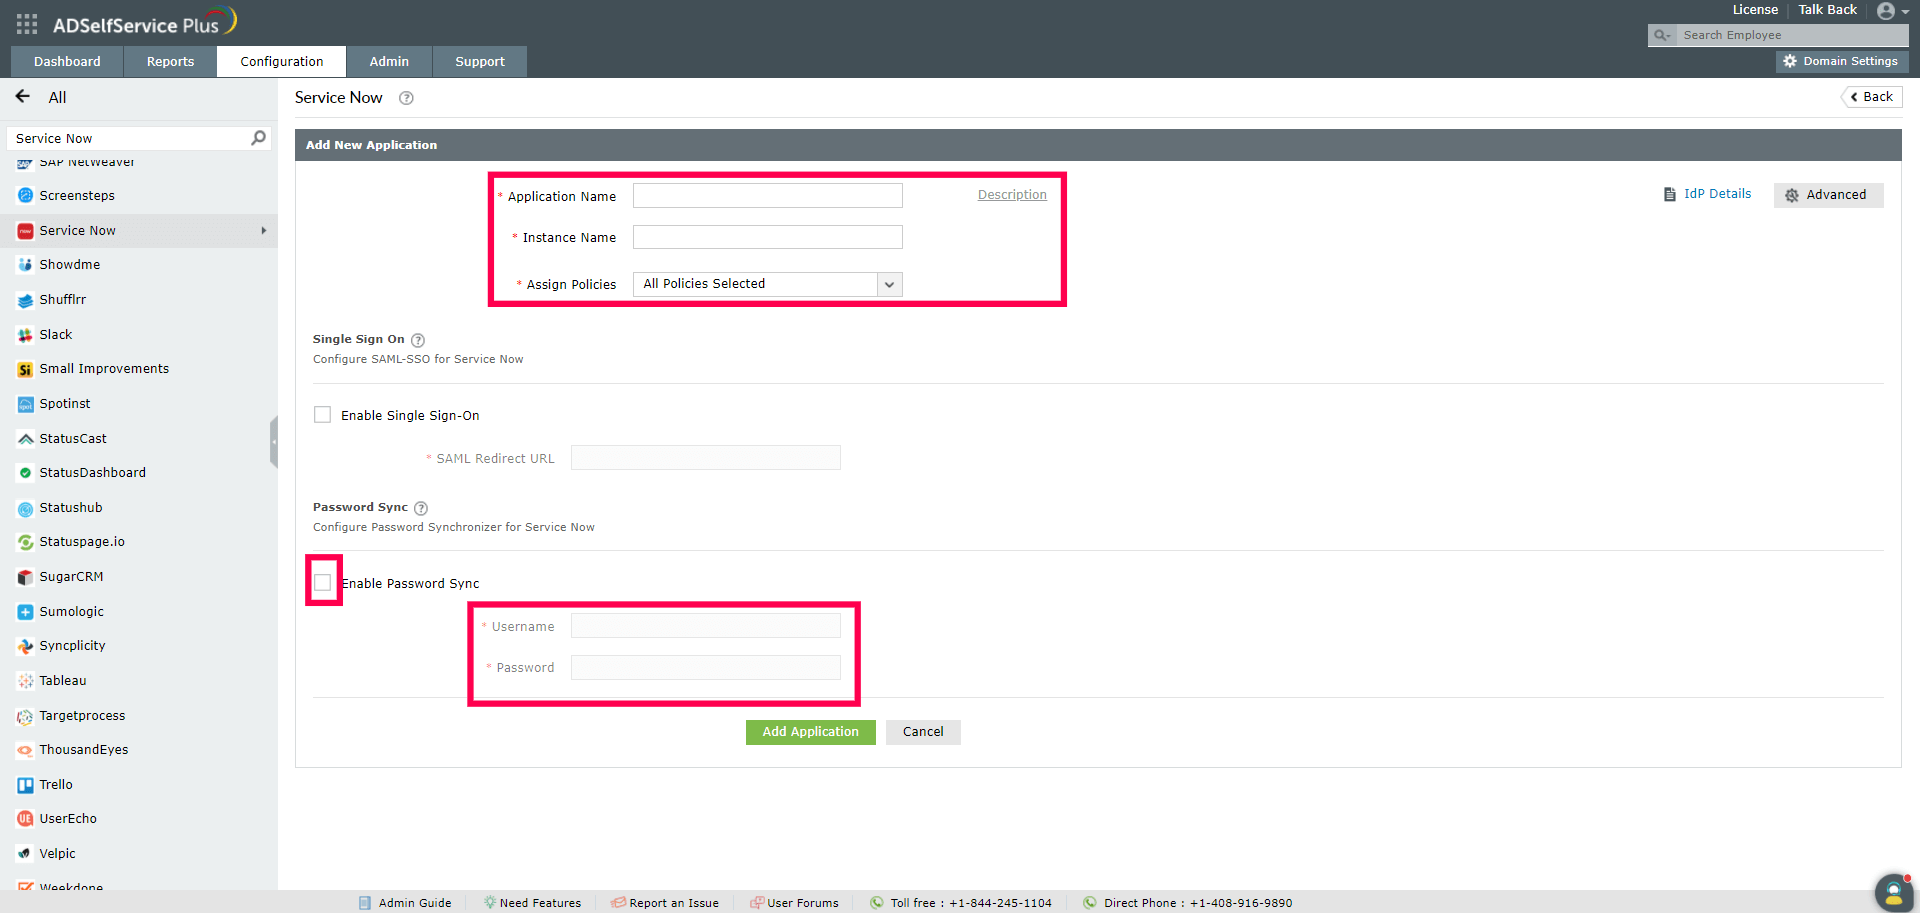 step-by-step-guide-for-servicenow-active-directory-integration